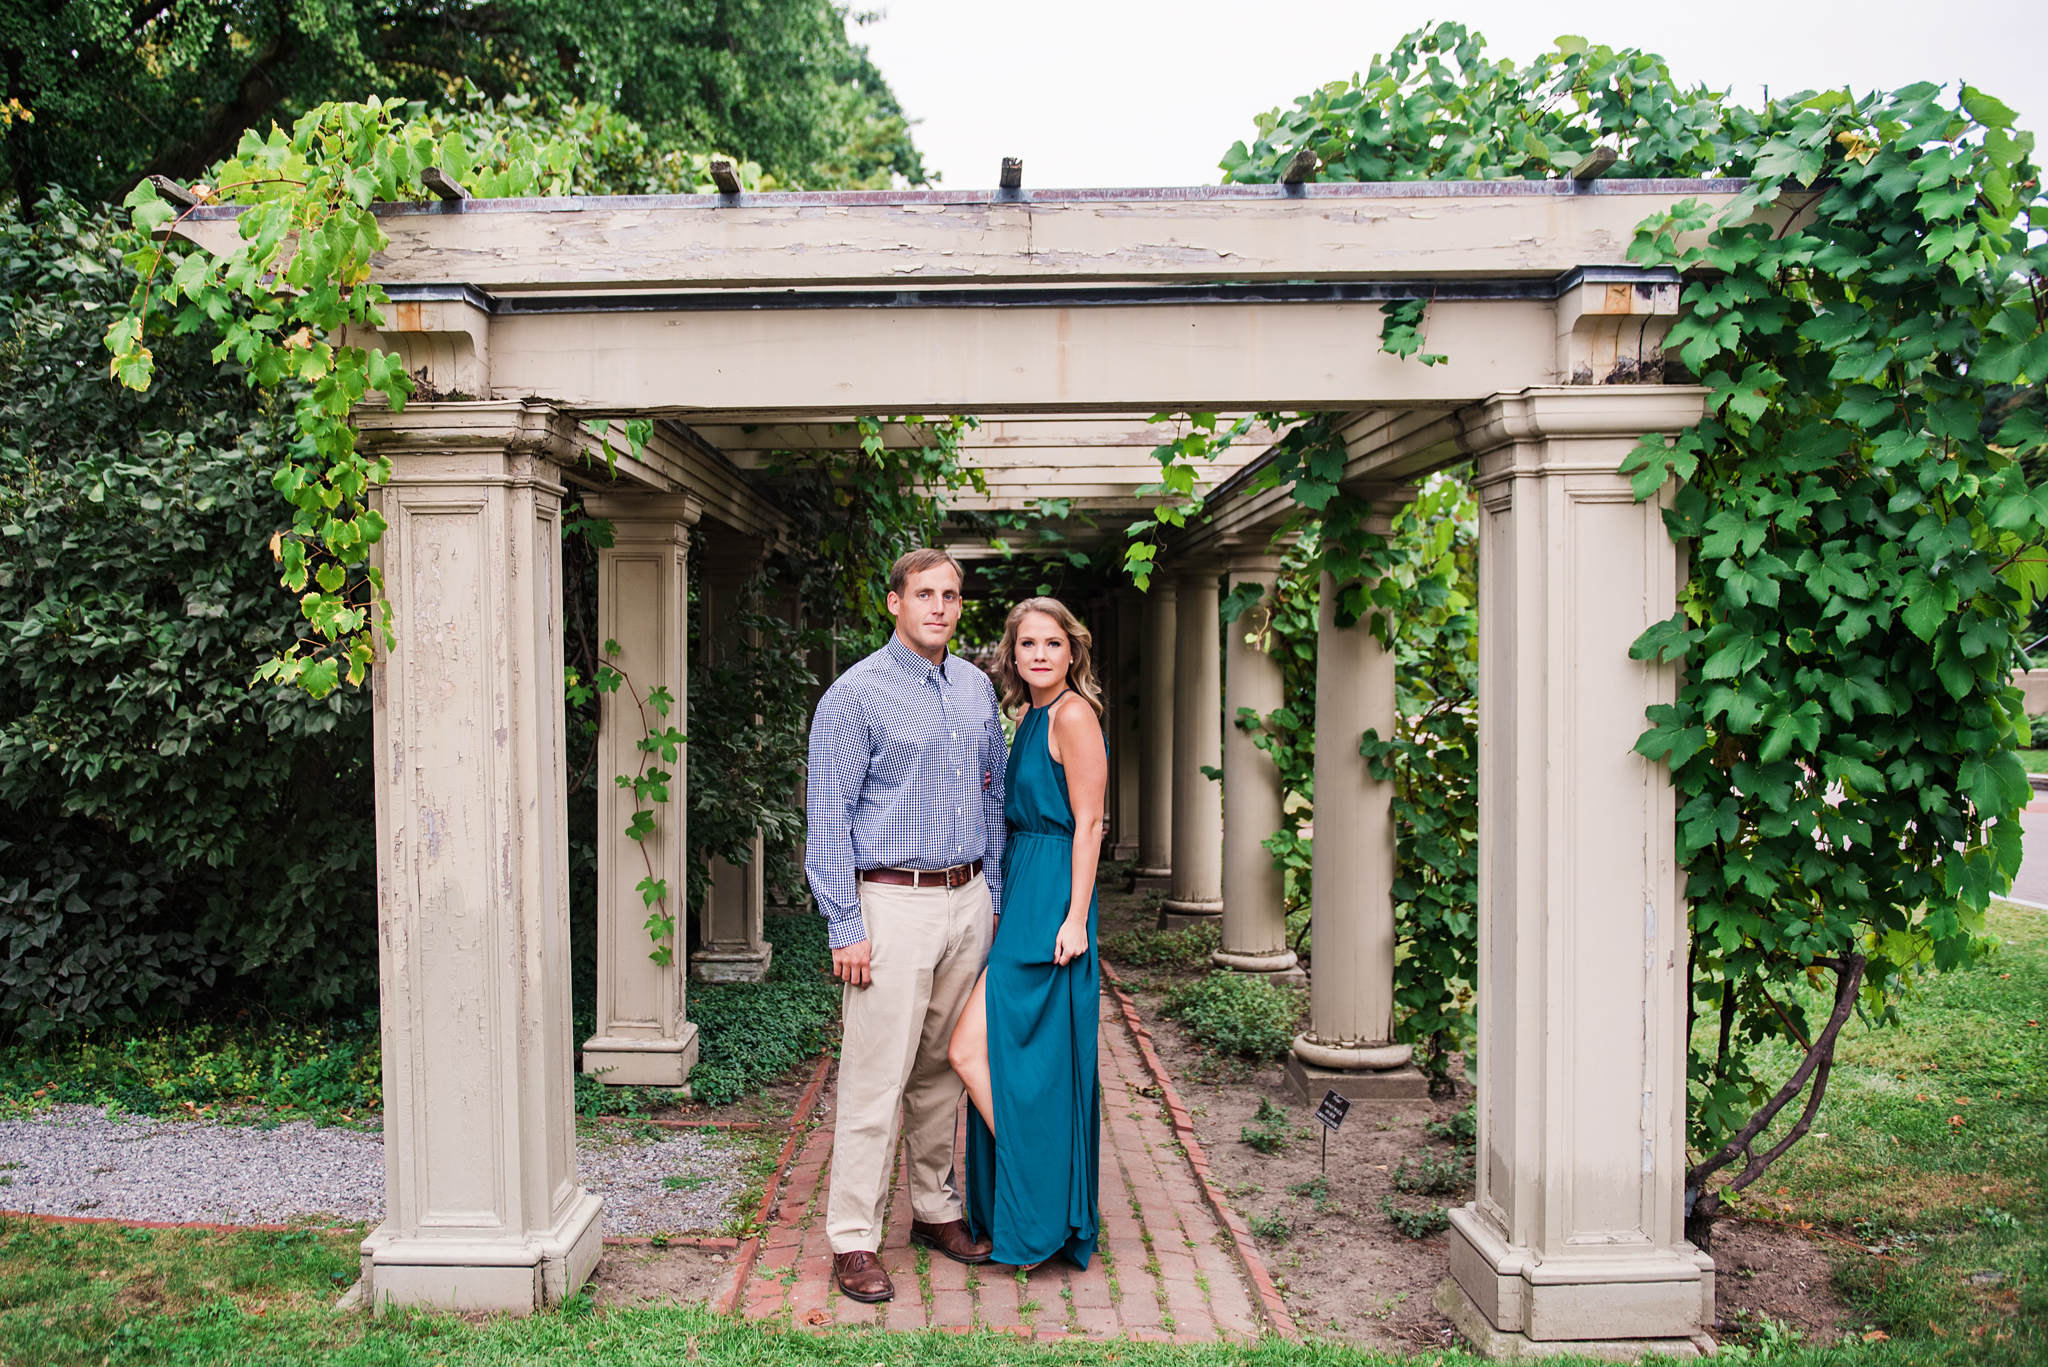 George_Eastman_House_Rochester_Yacht_Club_Rochester_Engagement_Session_JILL_STUDIO_Rochester_NY_Photographer_DSC_8108.jpg